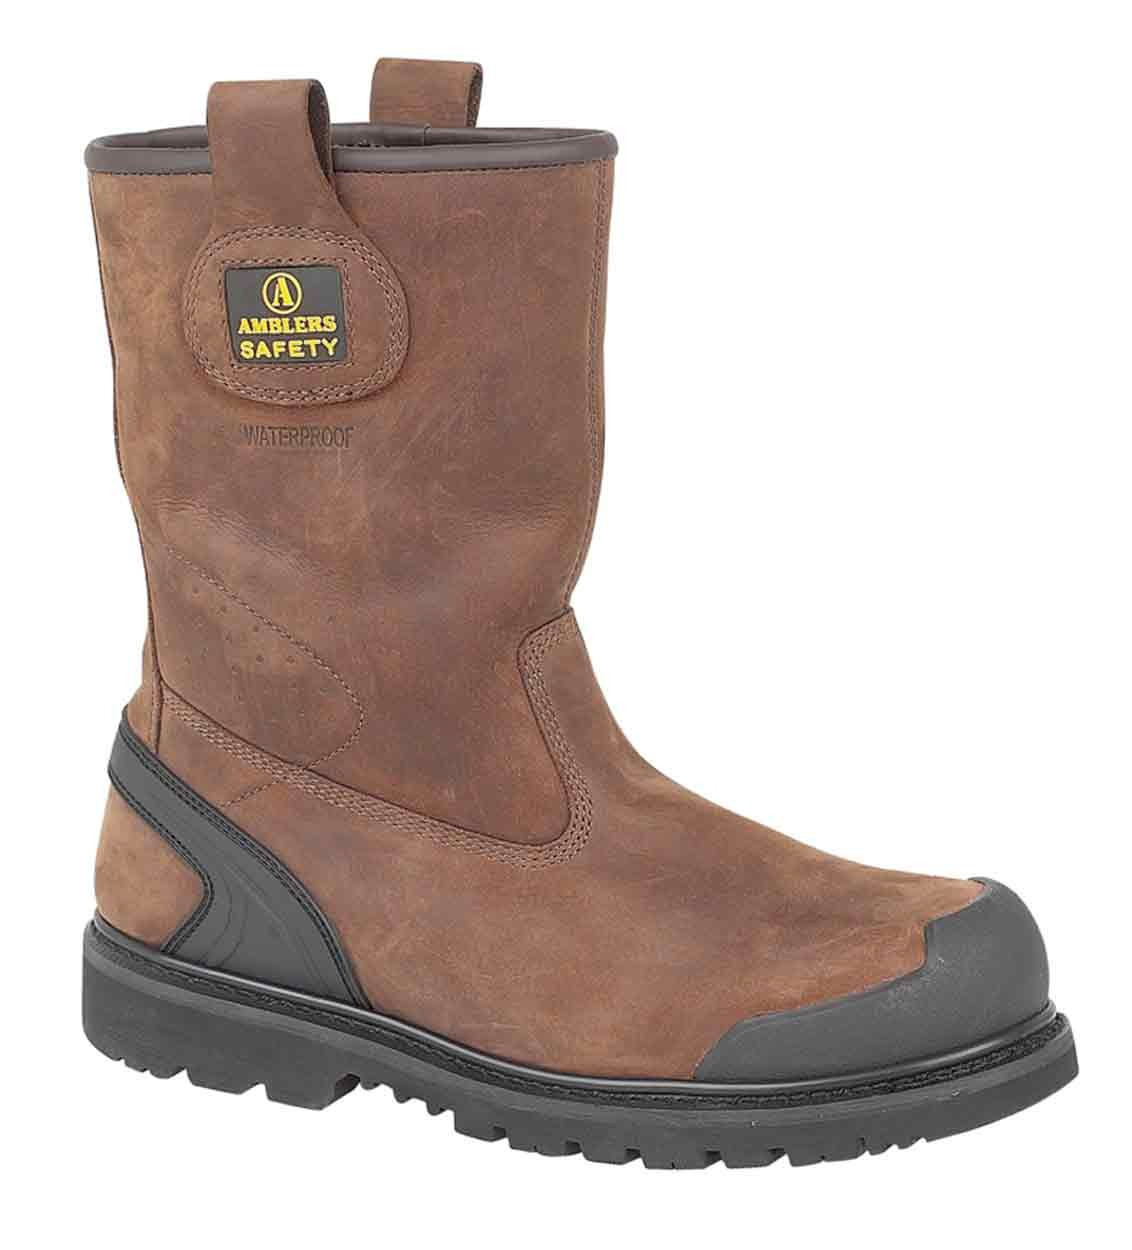 affb060f806 Amblers Steel FS223 Composite Safety Rigger Boot - Composite and ...